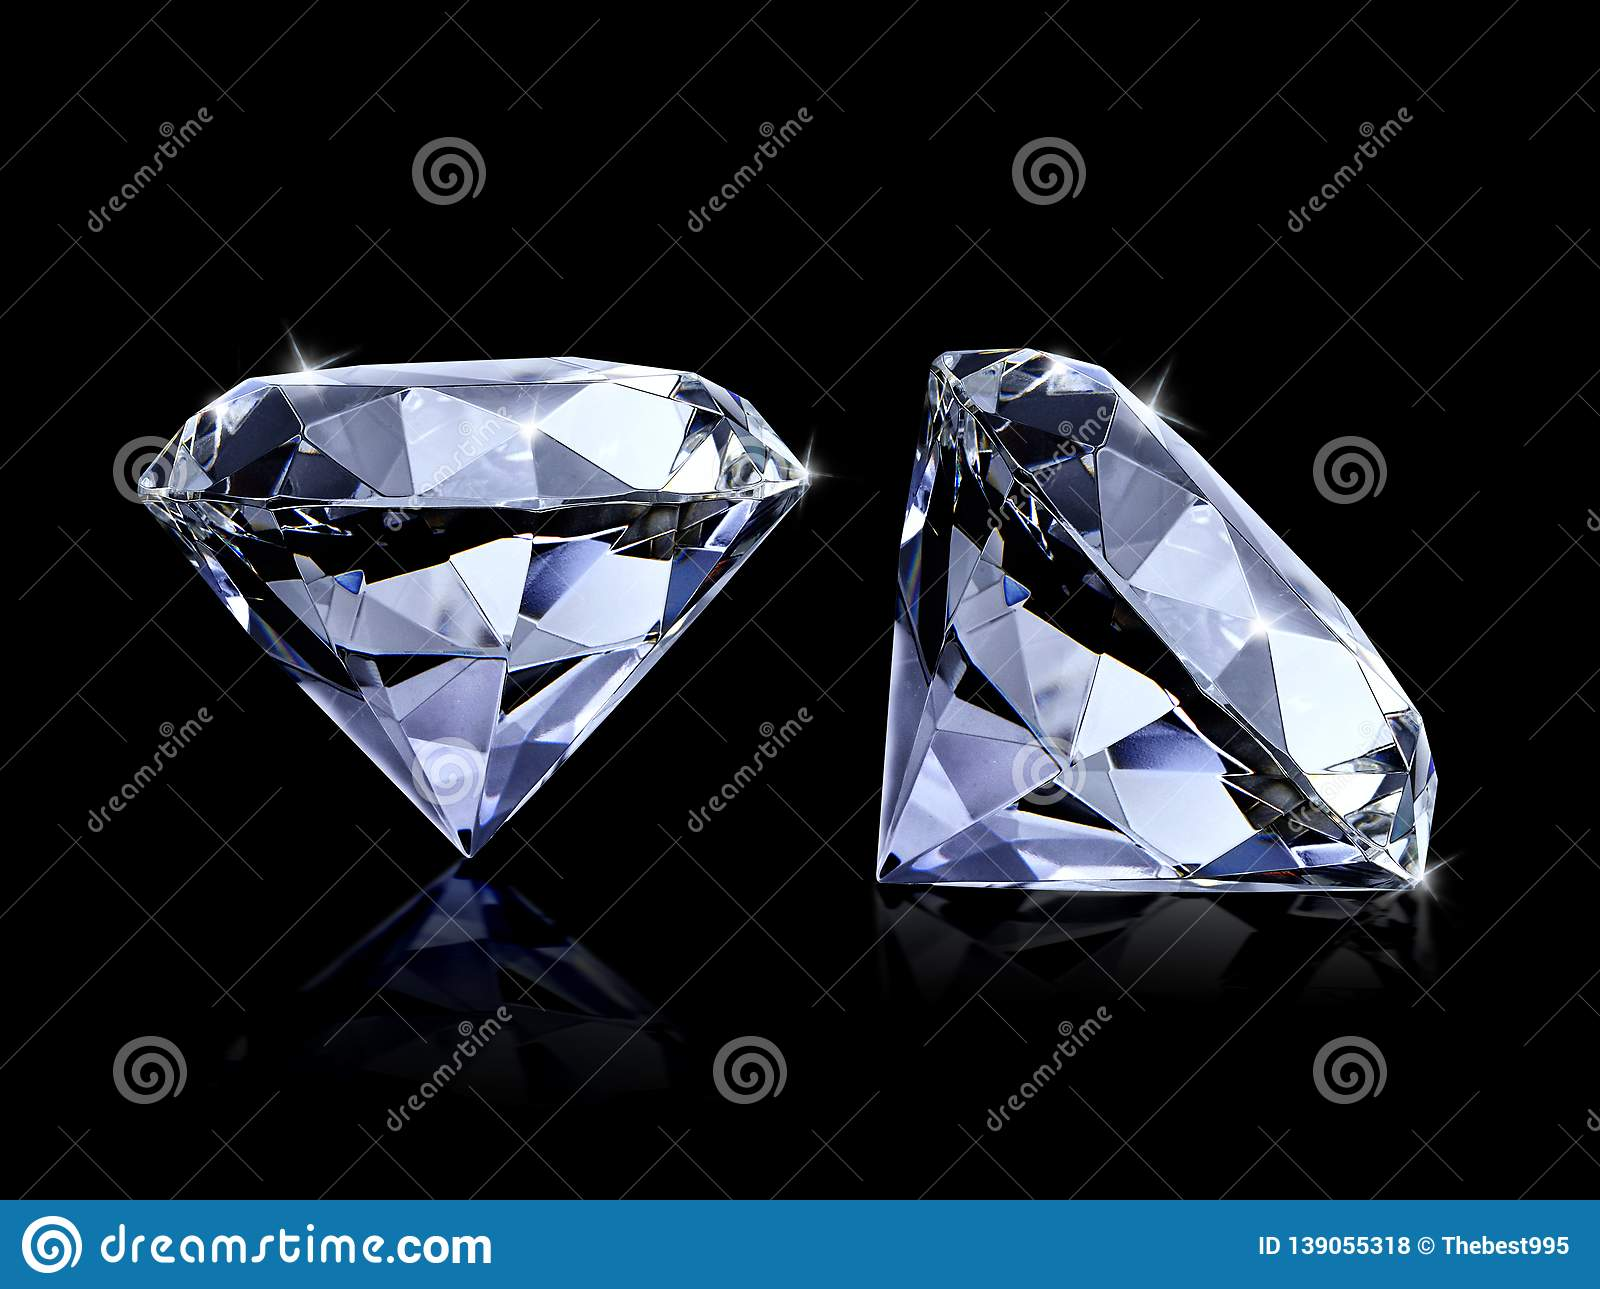 Large Clear Diamond, white background